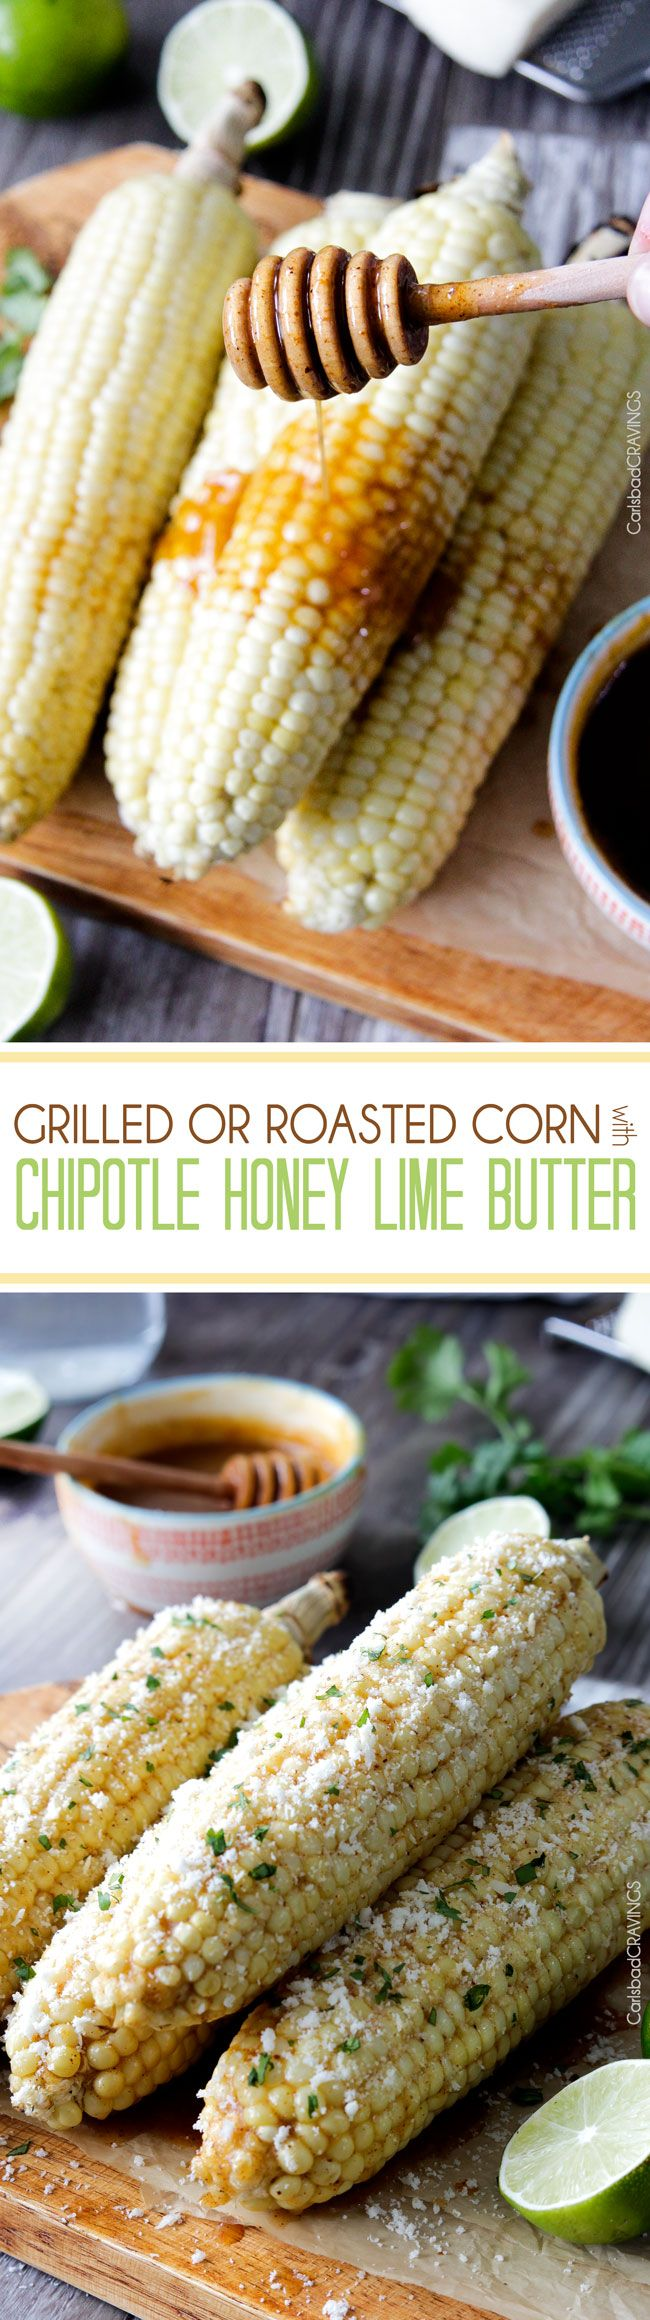 Roasted or grilled corn on the cob never tasted so delicious brushed with delectable Chipotle Honey Lime Butter